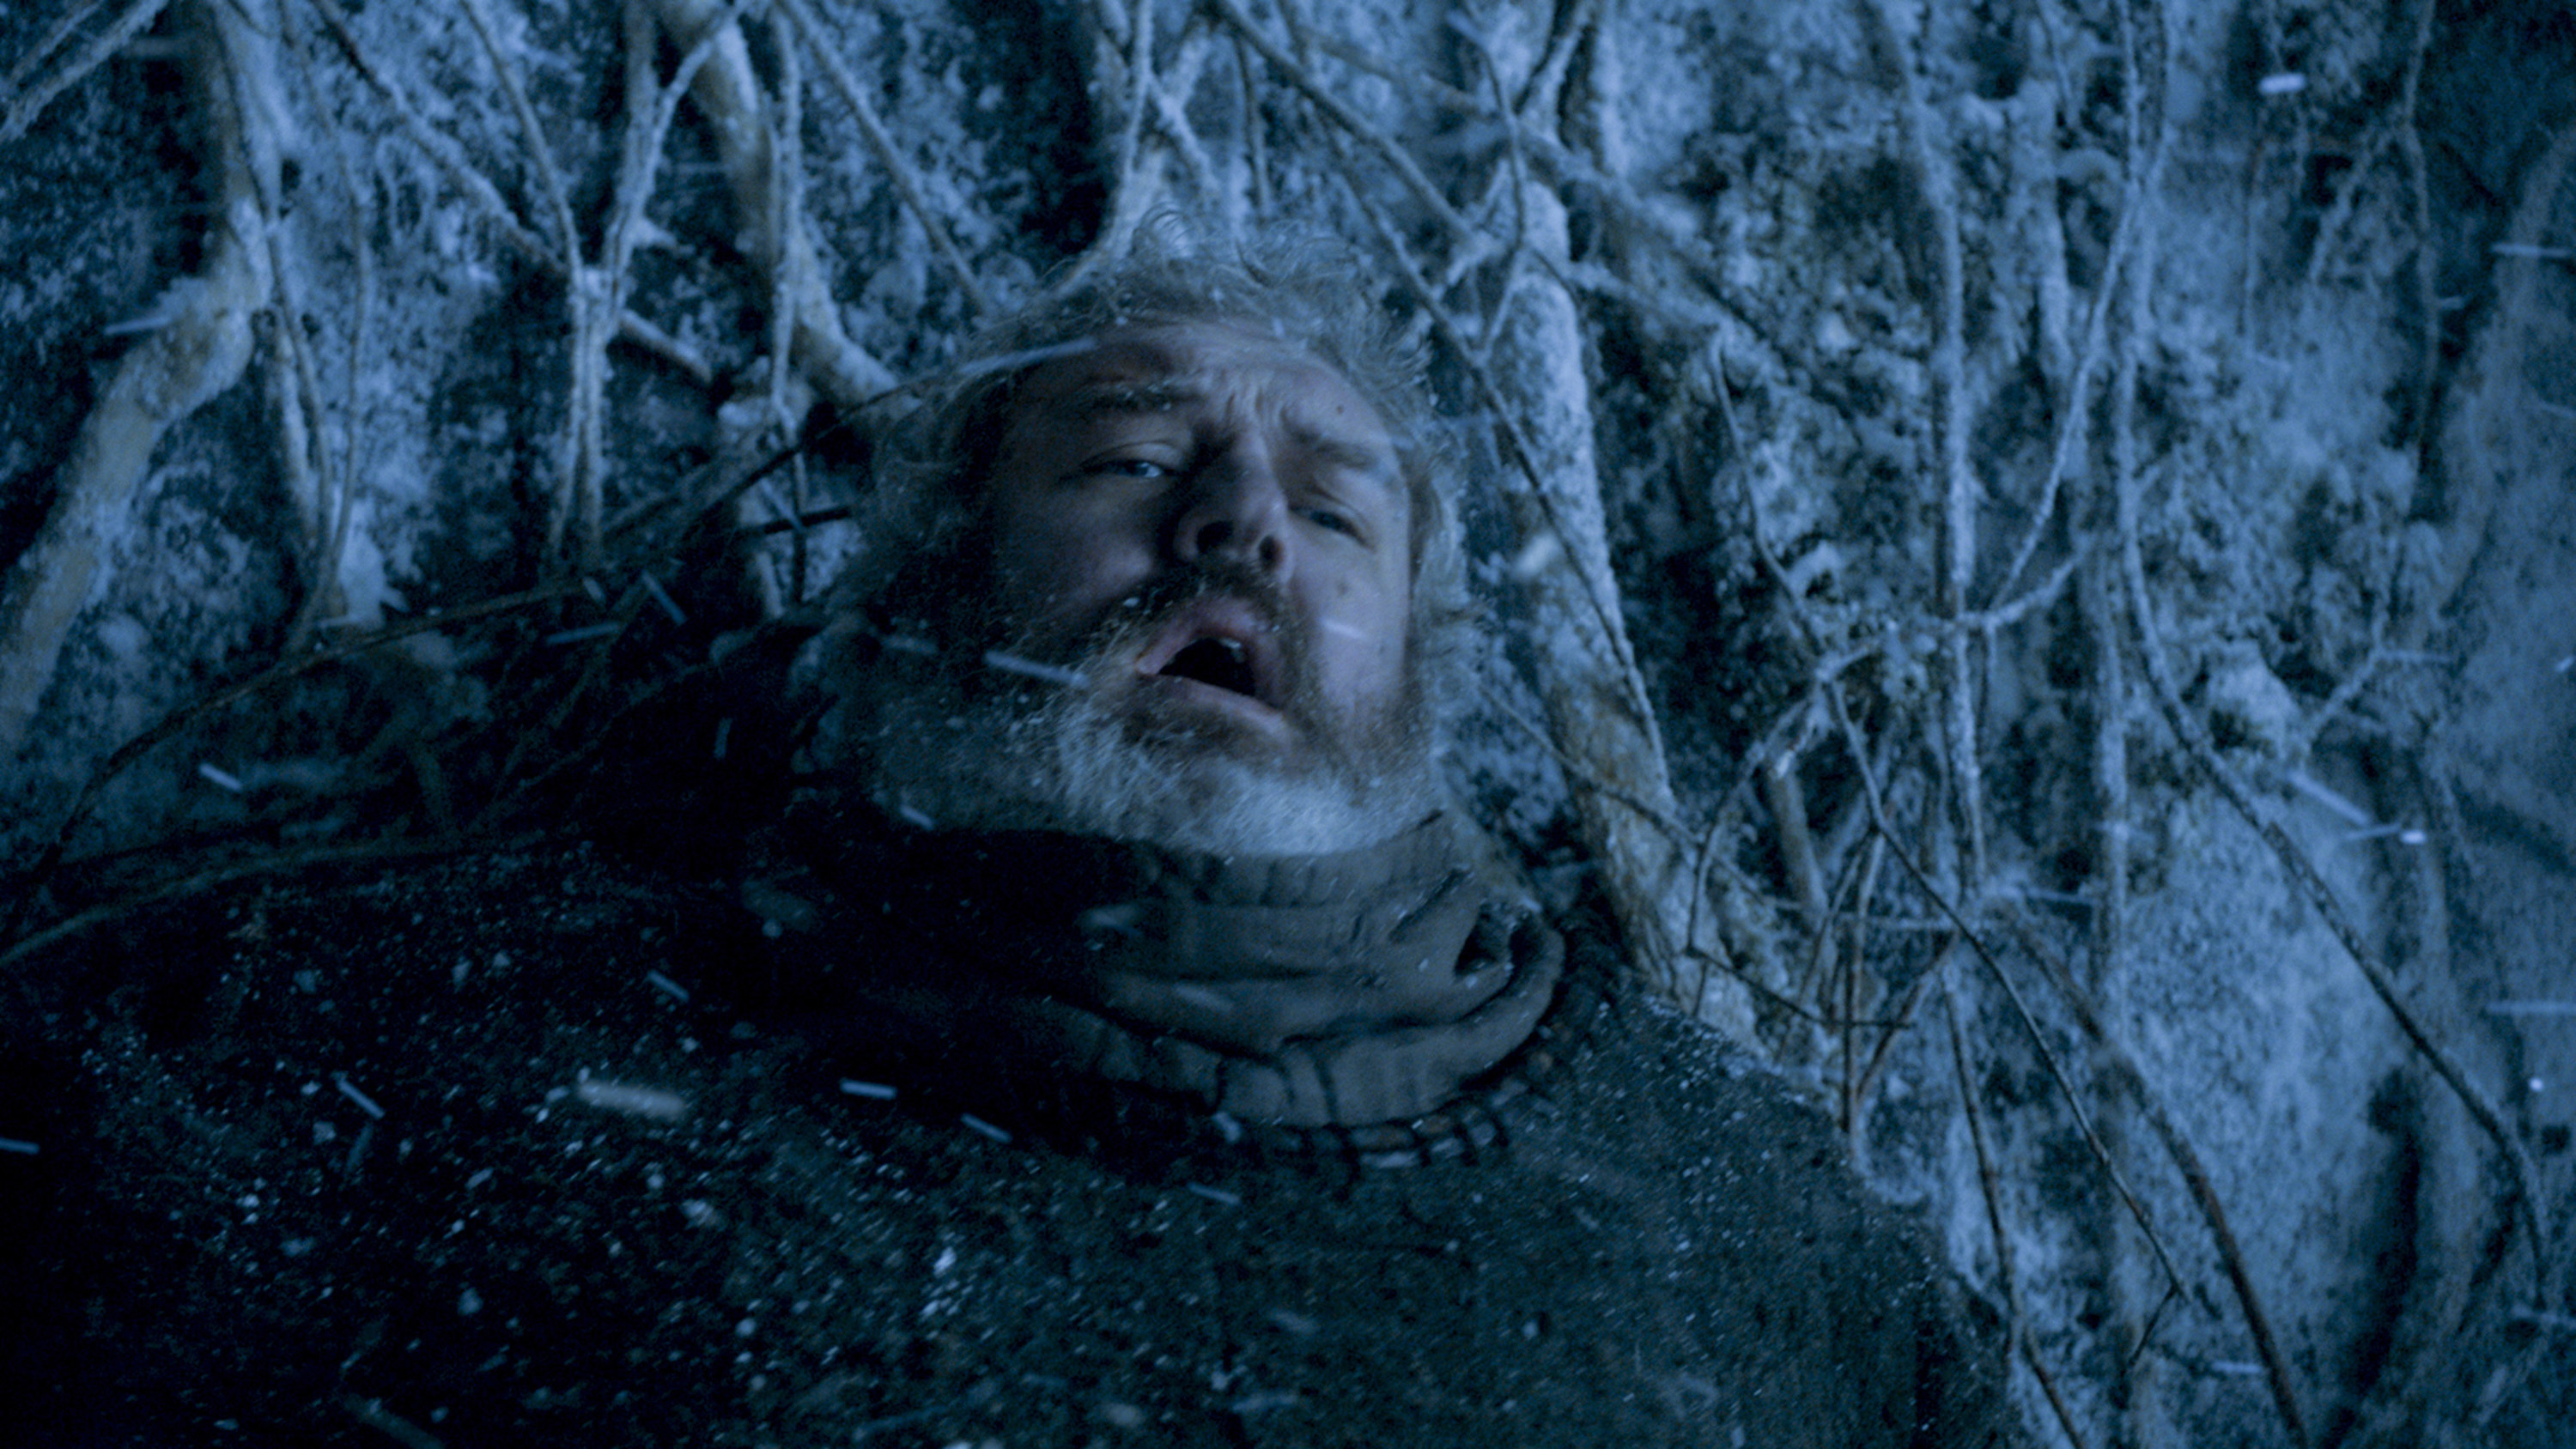 Still from Game of Thrones: Hodor stands against a tree-covered door looking pained